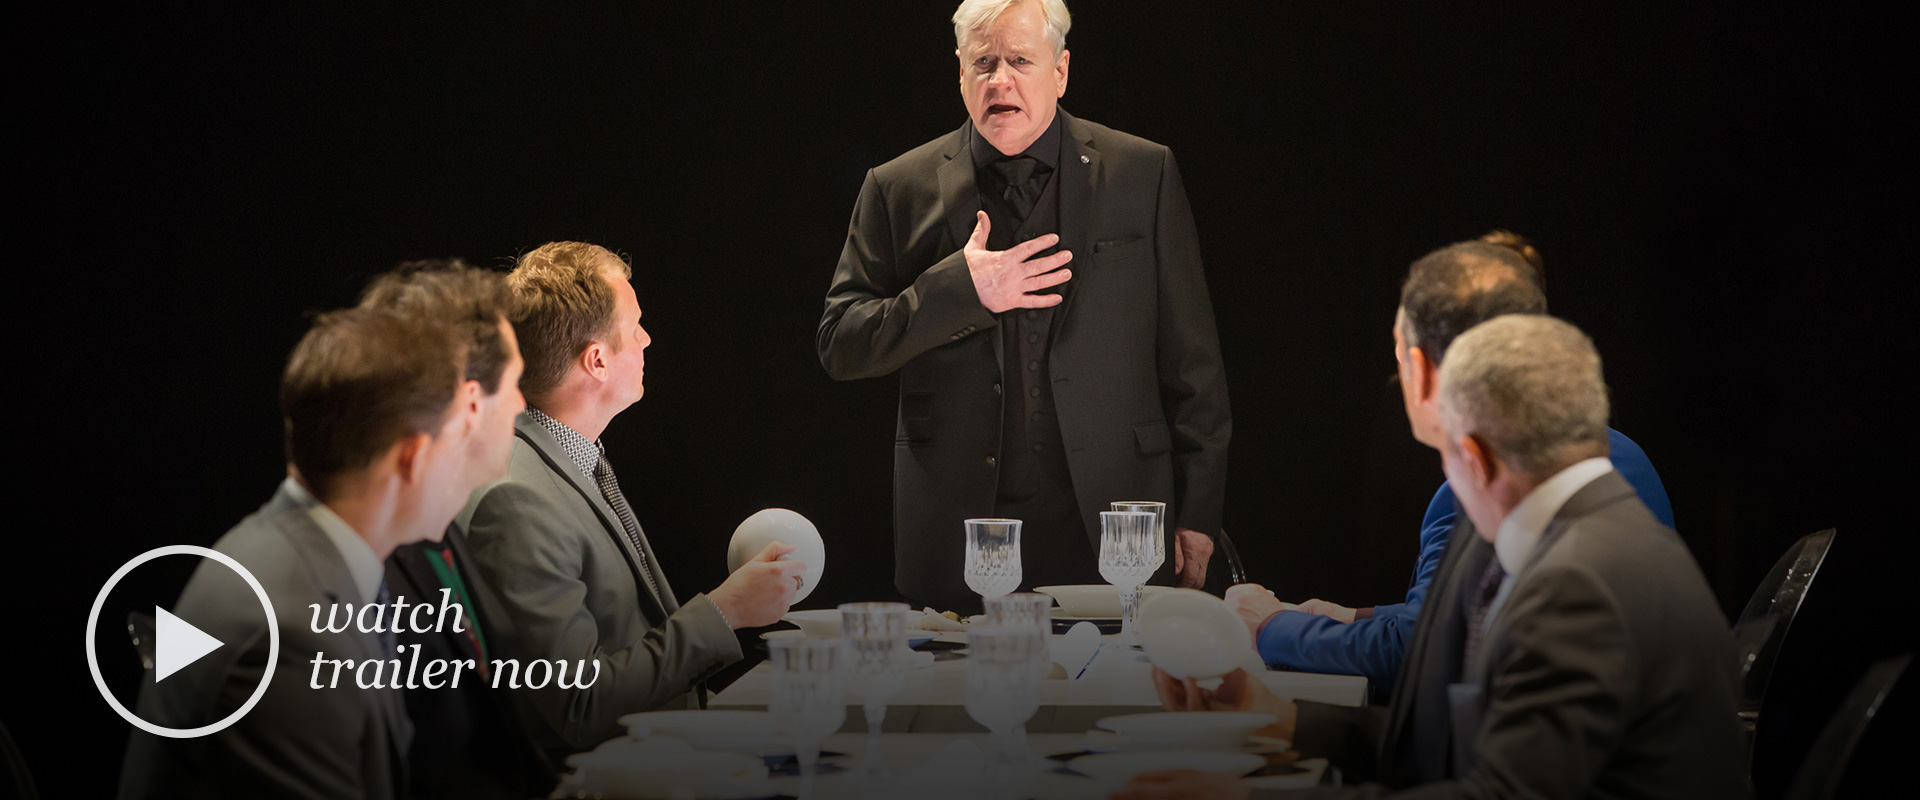 Publicity image from Timon of Athens featuring Joseph Ziegler